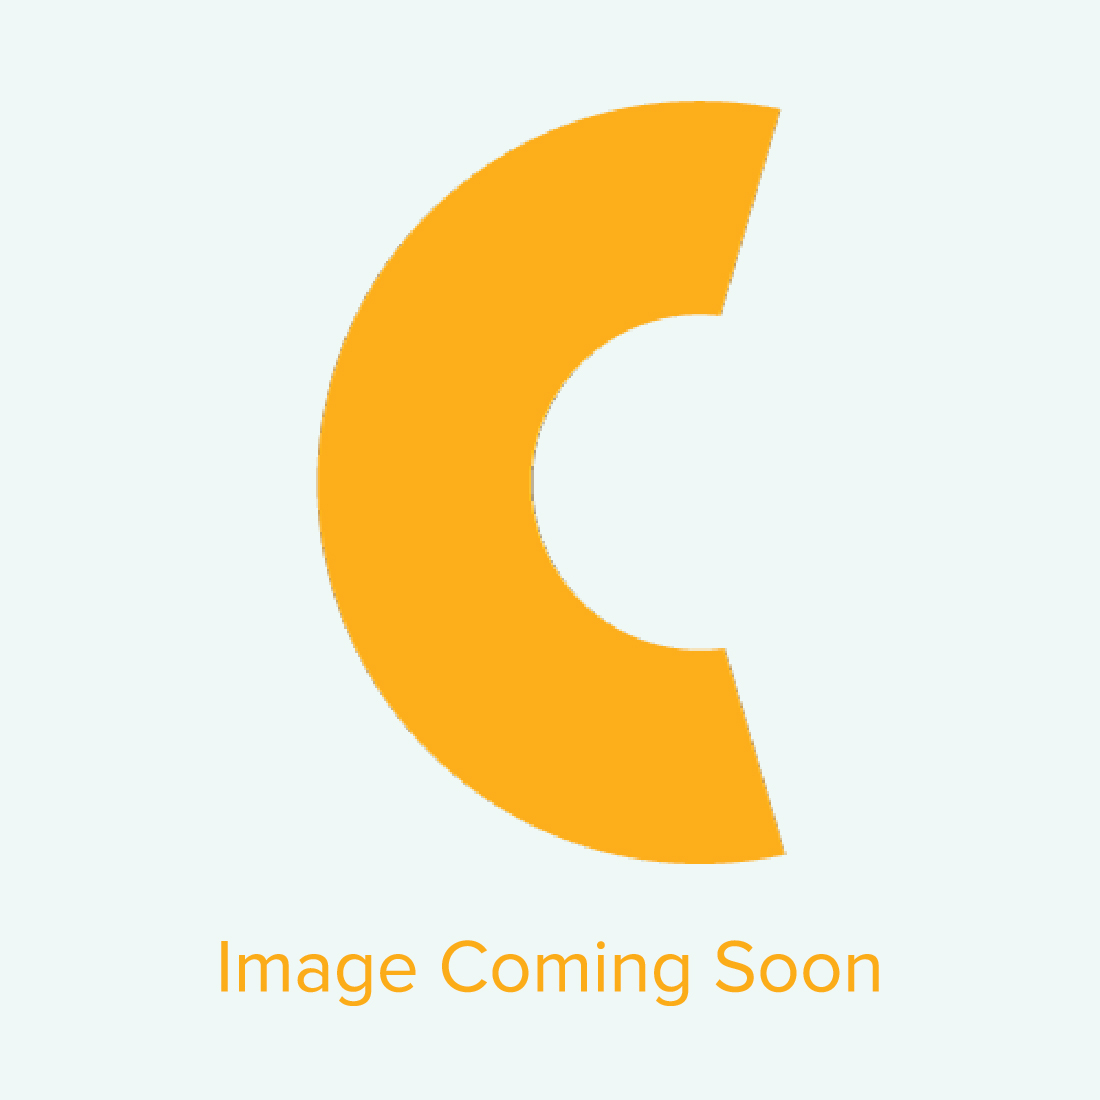 3G Jet Opaque - Inkjet Heat Transfer Paper Roll